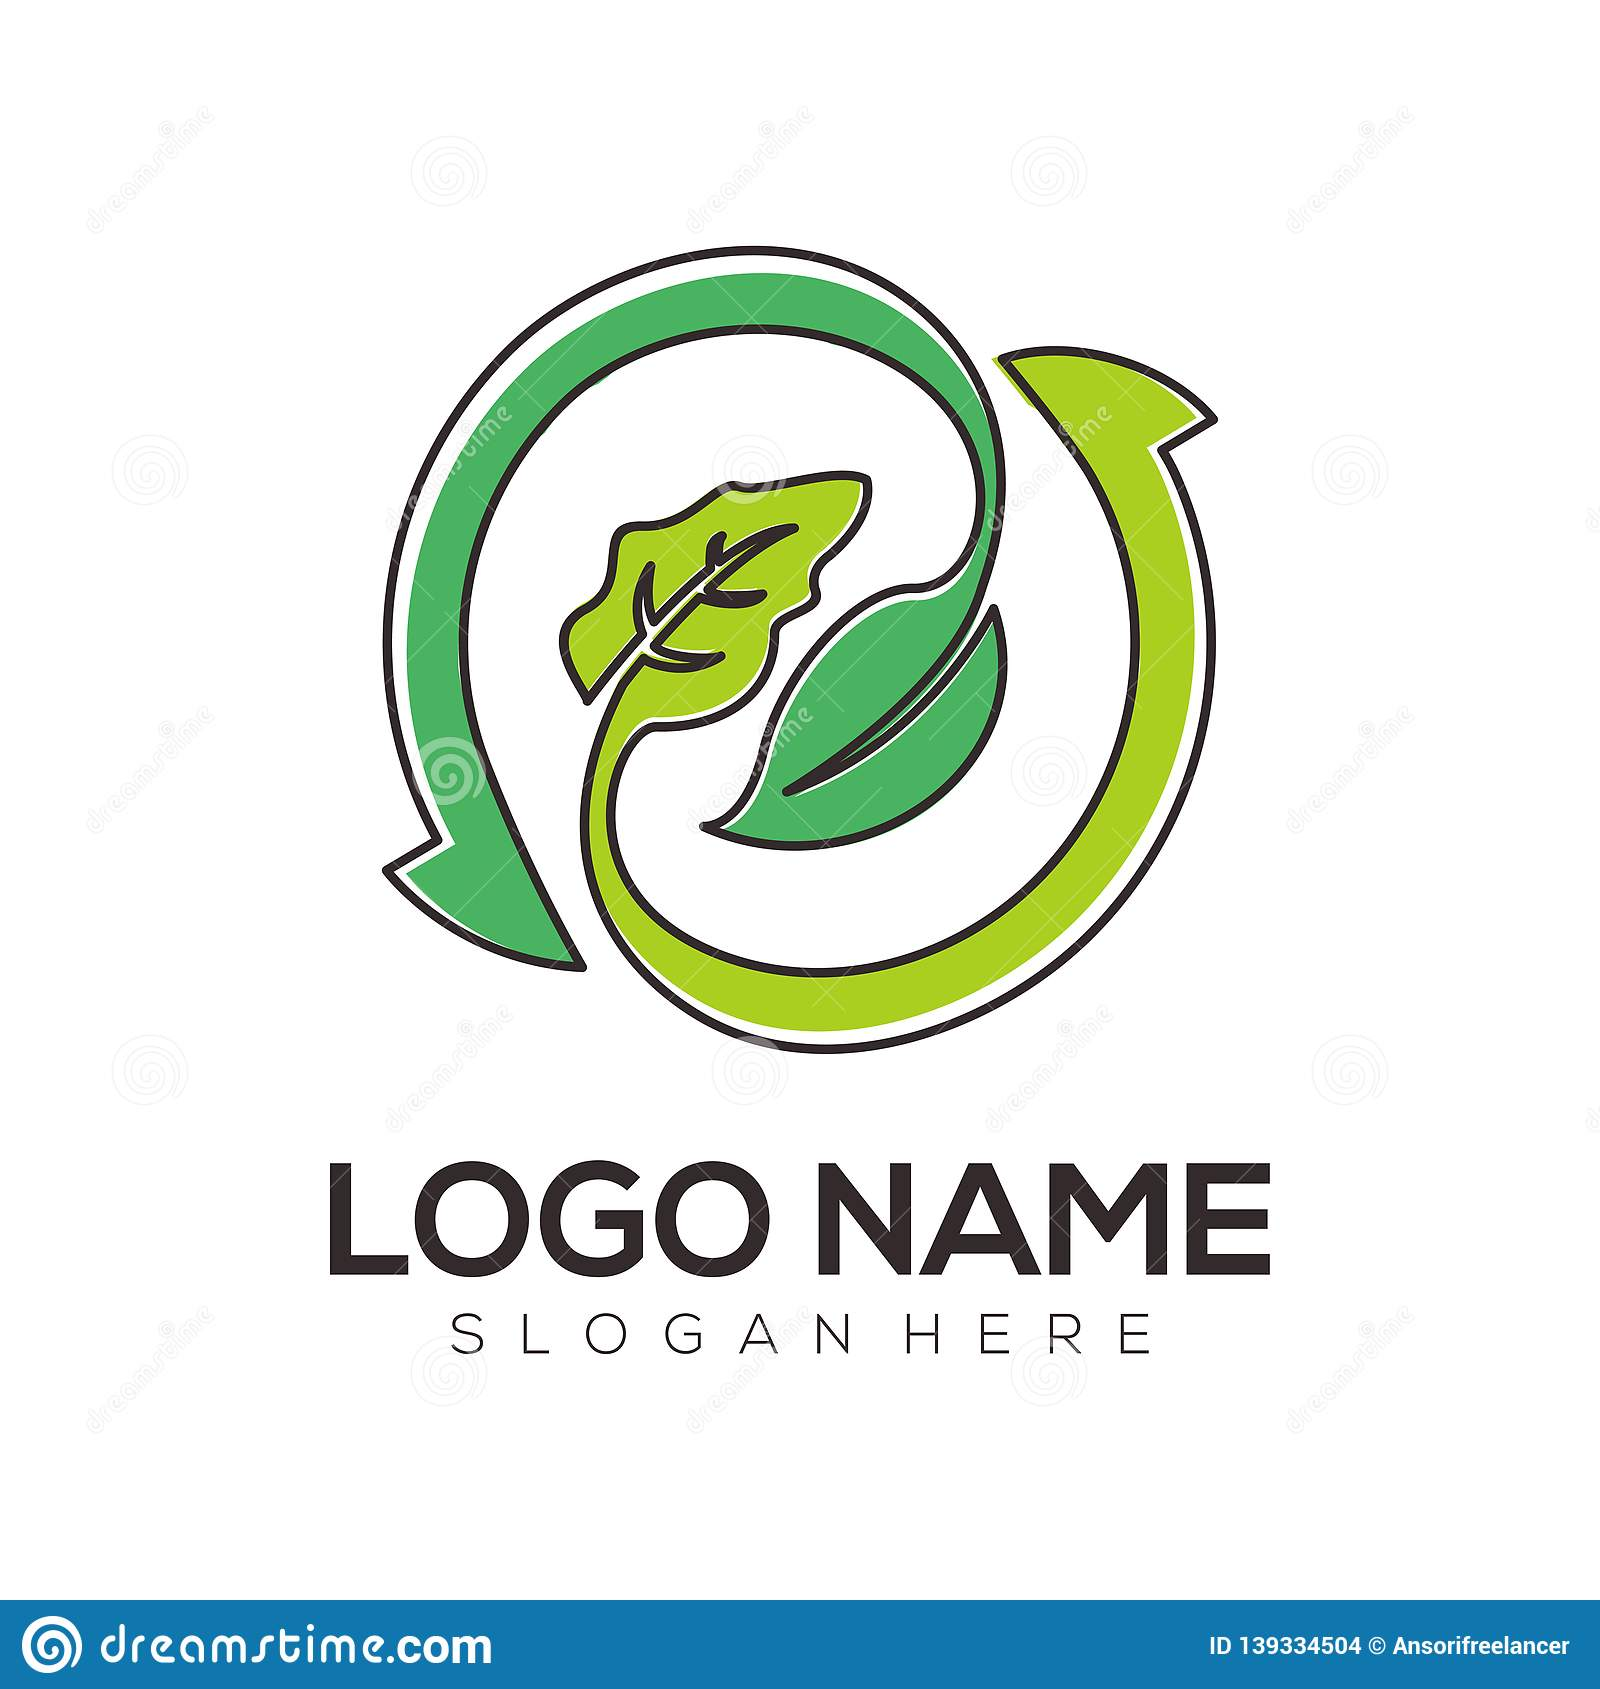 Environment Logo And Icon Design Stock Vector Illustration Of Leaf Growth 139334504,French Kitchen Design 2020